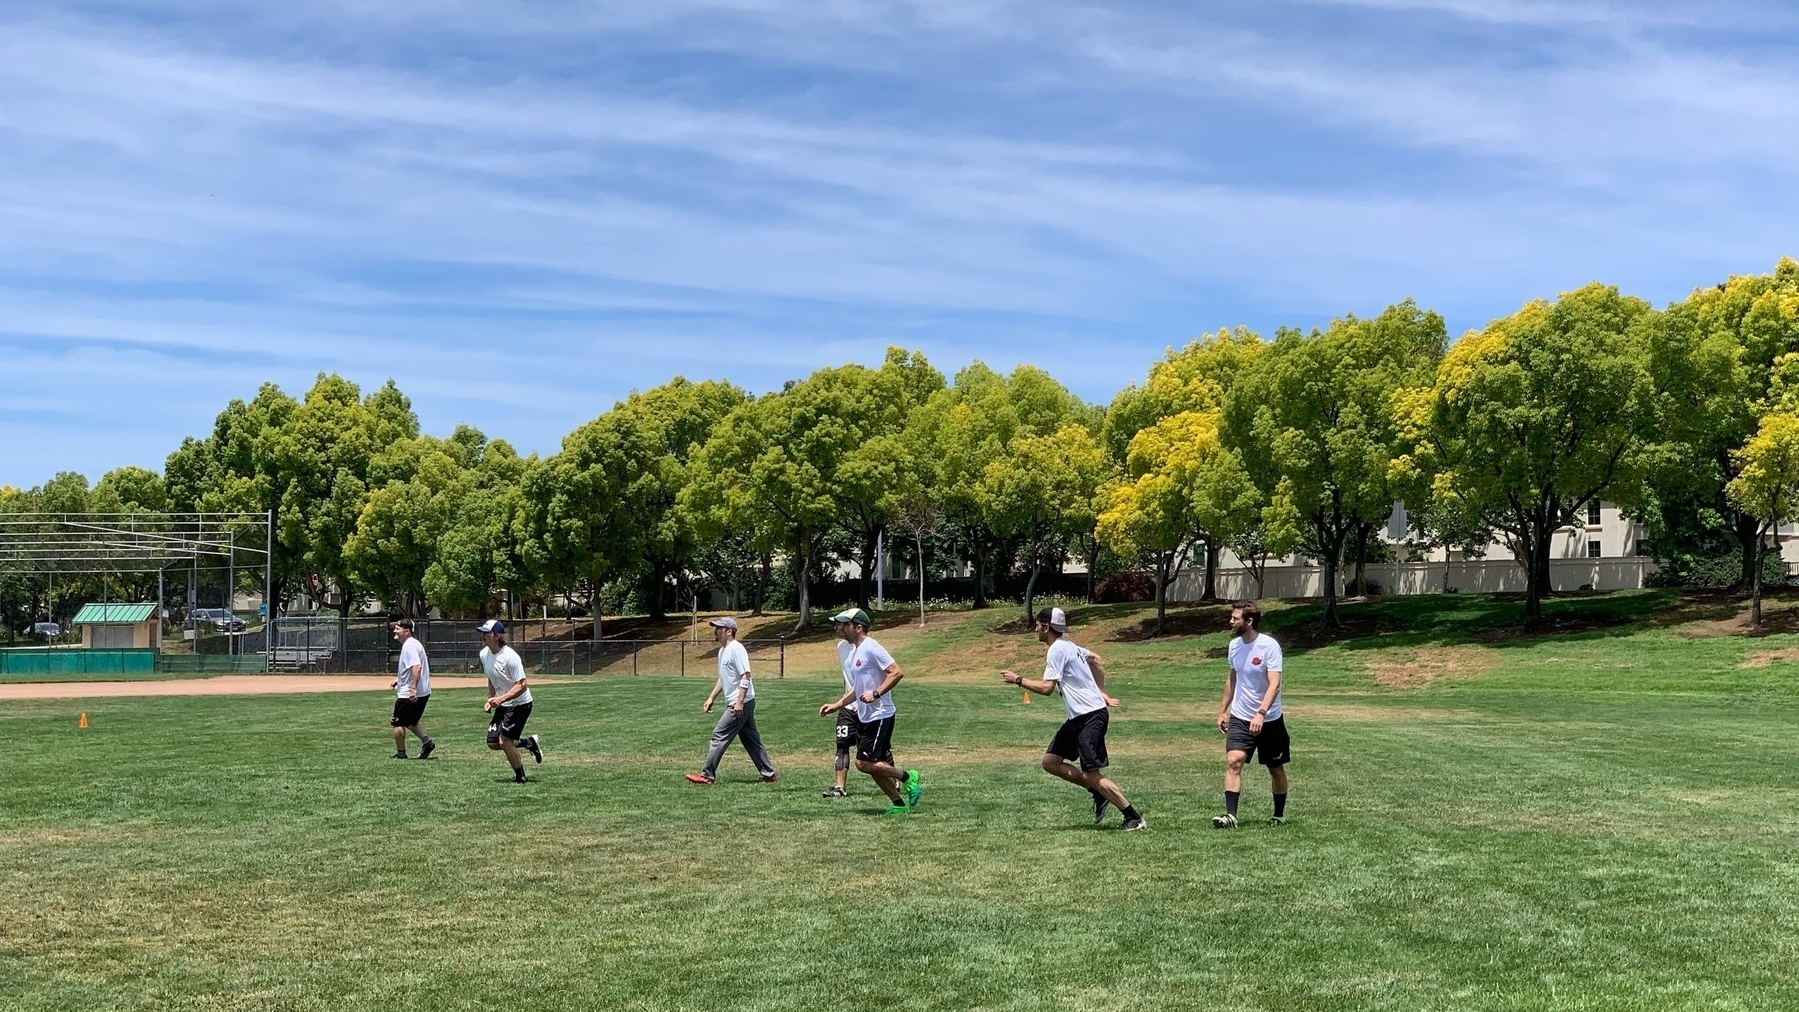 seven players on an ultimate field, first steps after the pull